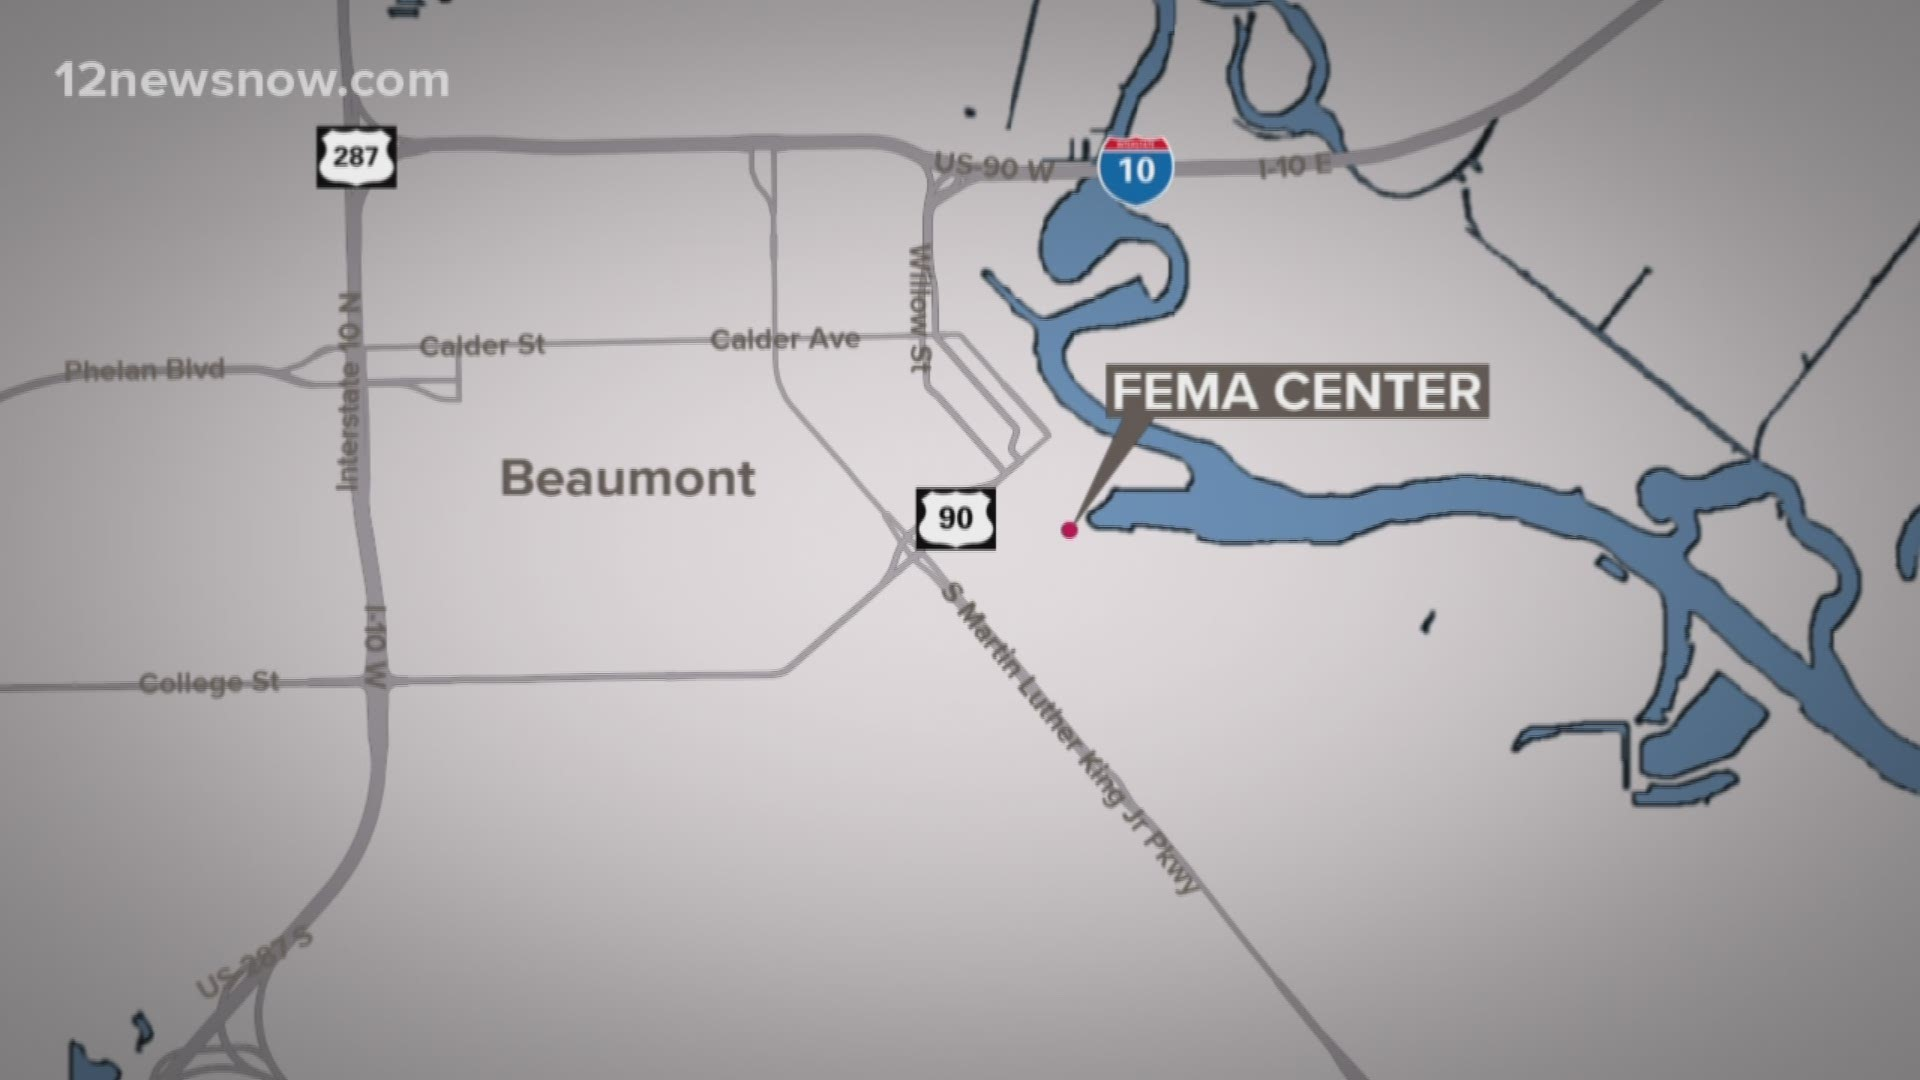 [SCHEMATICS_4PO]  FEMA Disaster Recovery Center opening near downtown Beaumont | 12newsnow.com | Fema Wiring Diagram |  | KBMT